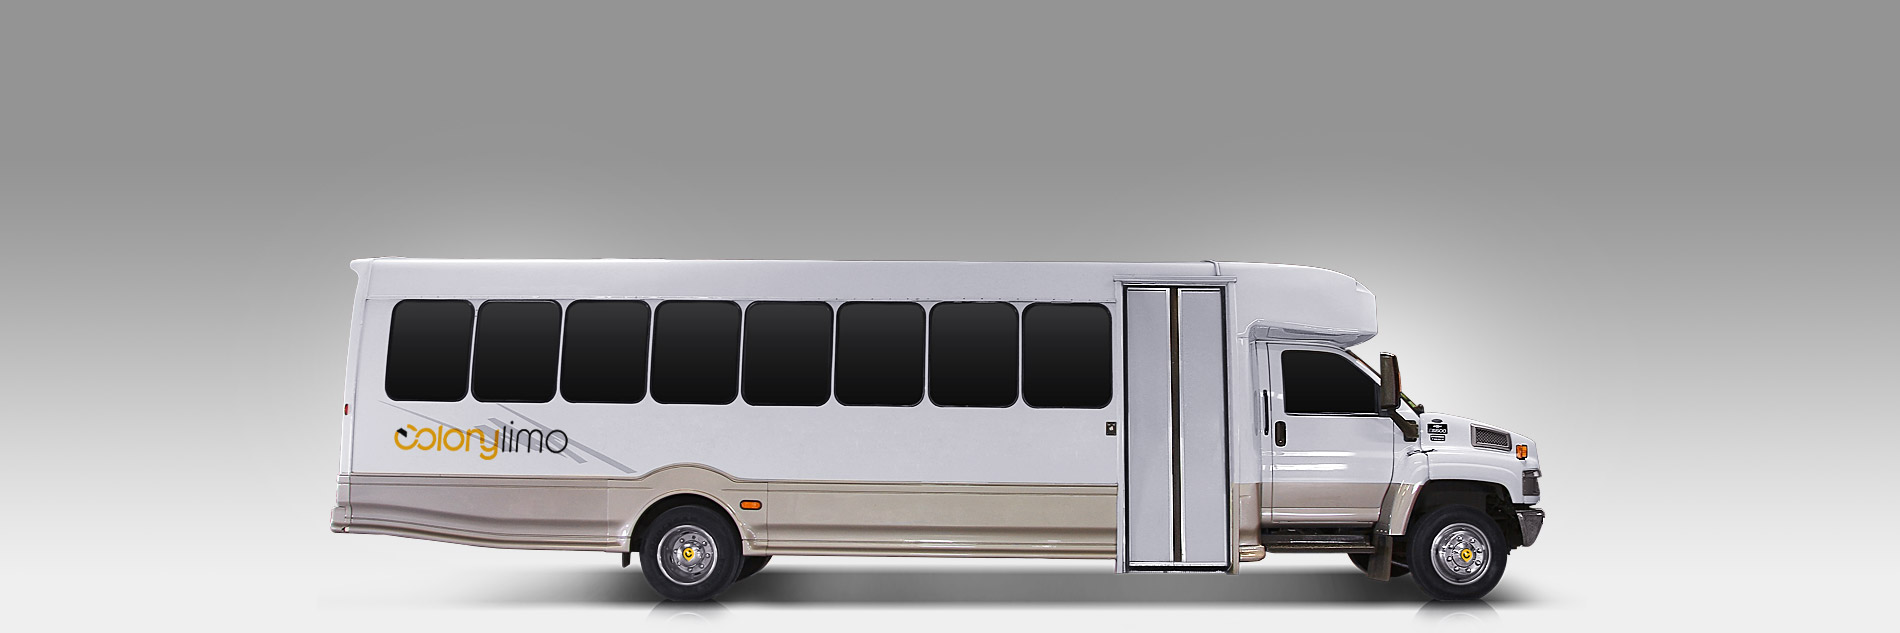 Shuttle Bus - 35 Passenger - Colony Limo Service Houston